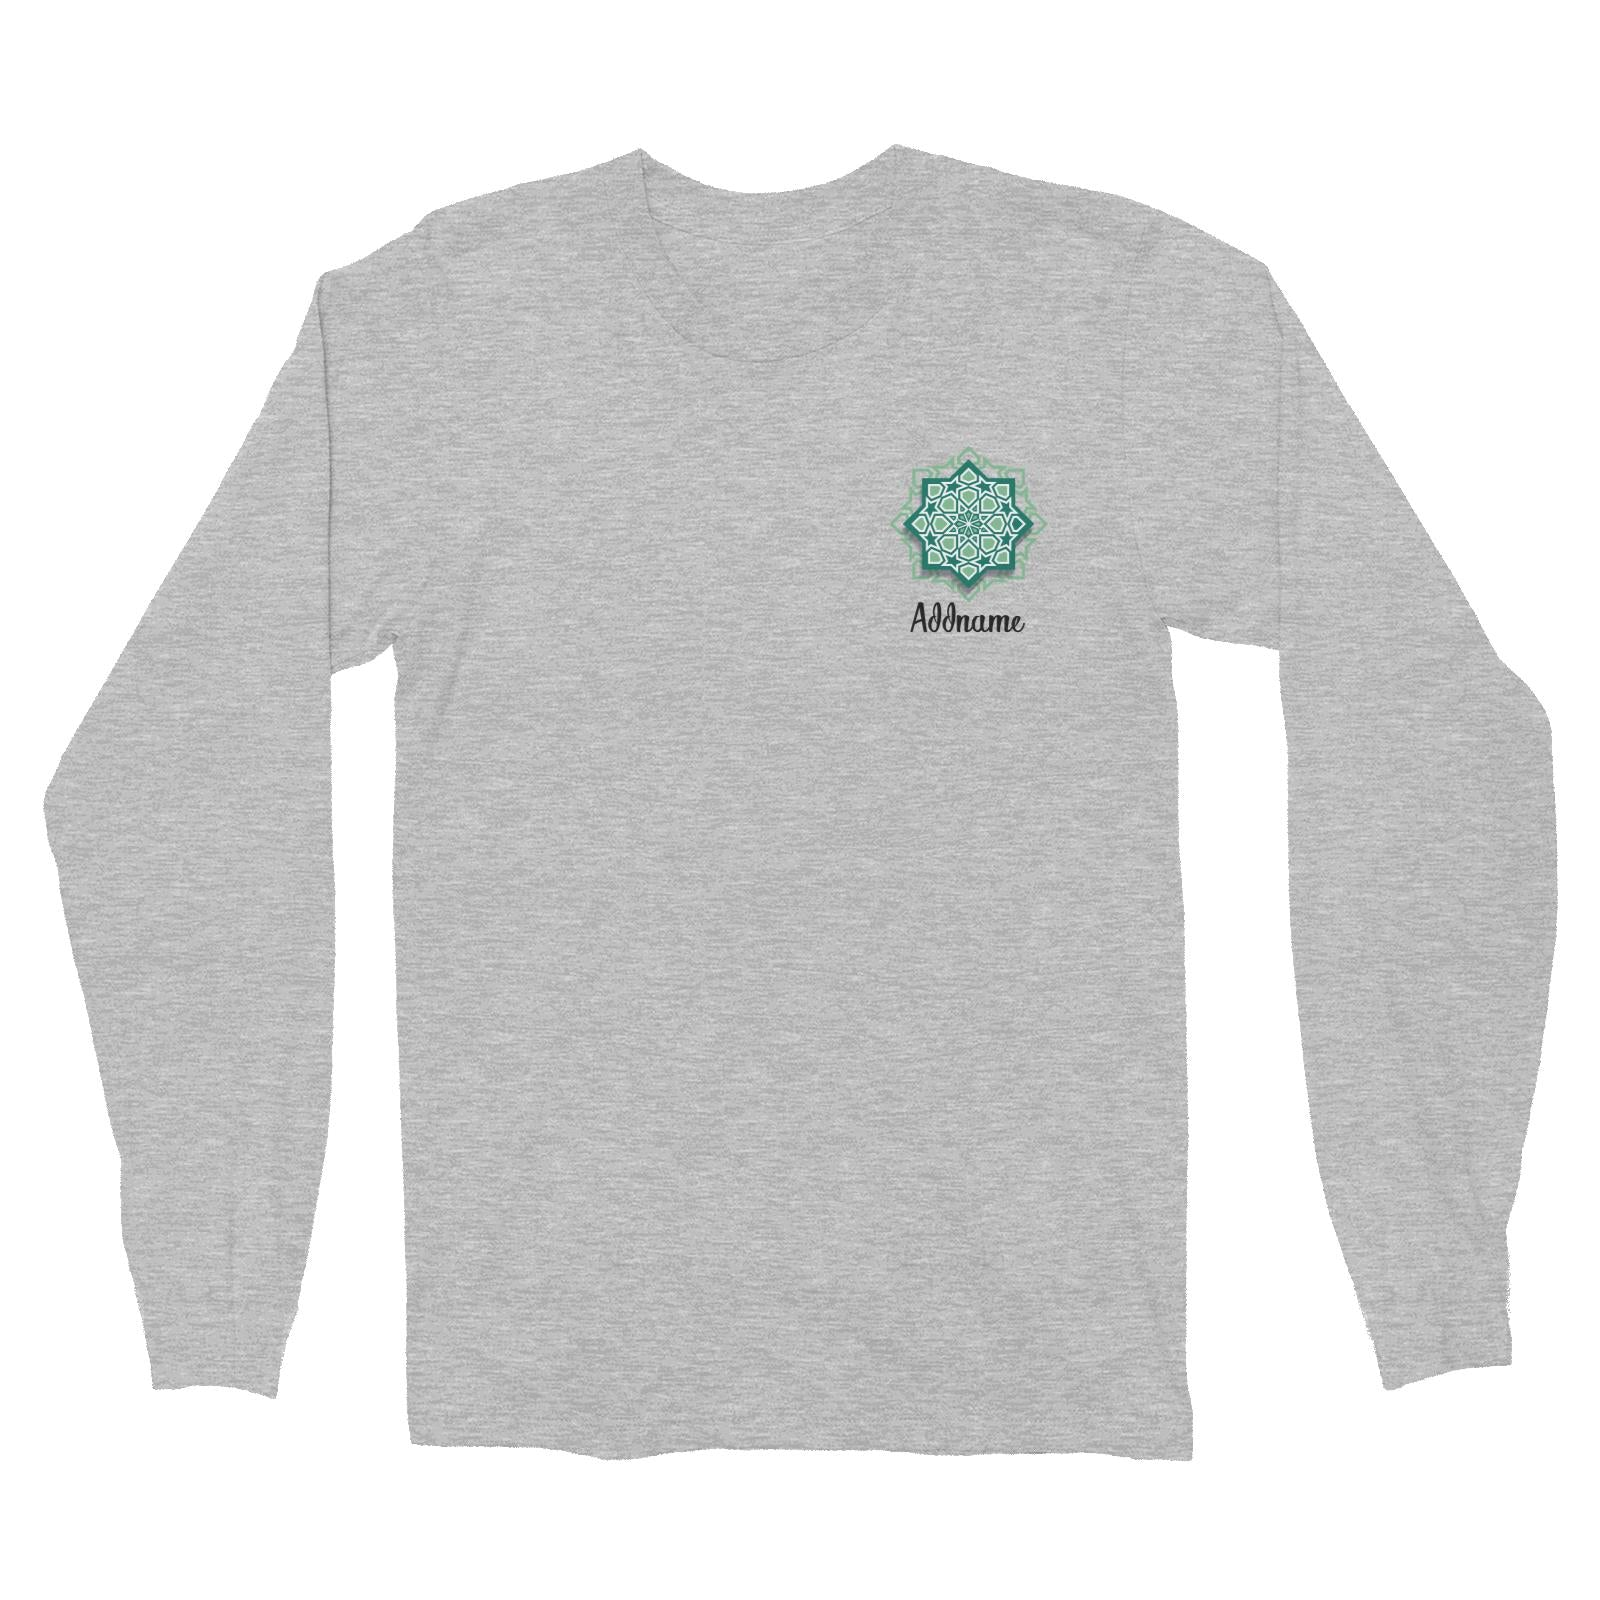 Raya Symbol Green Islamic Geometric Pocket Addname Long Sleeve Unisex T-Shirt